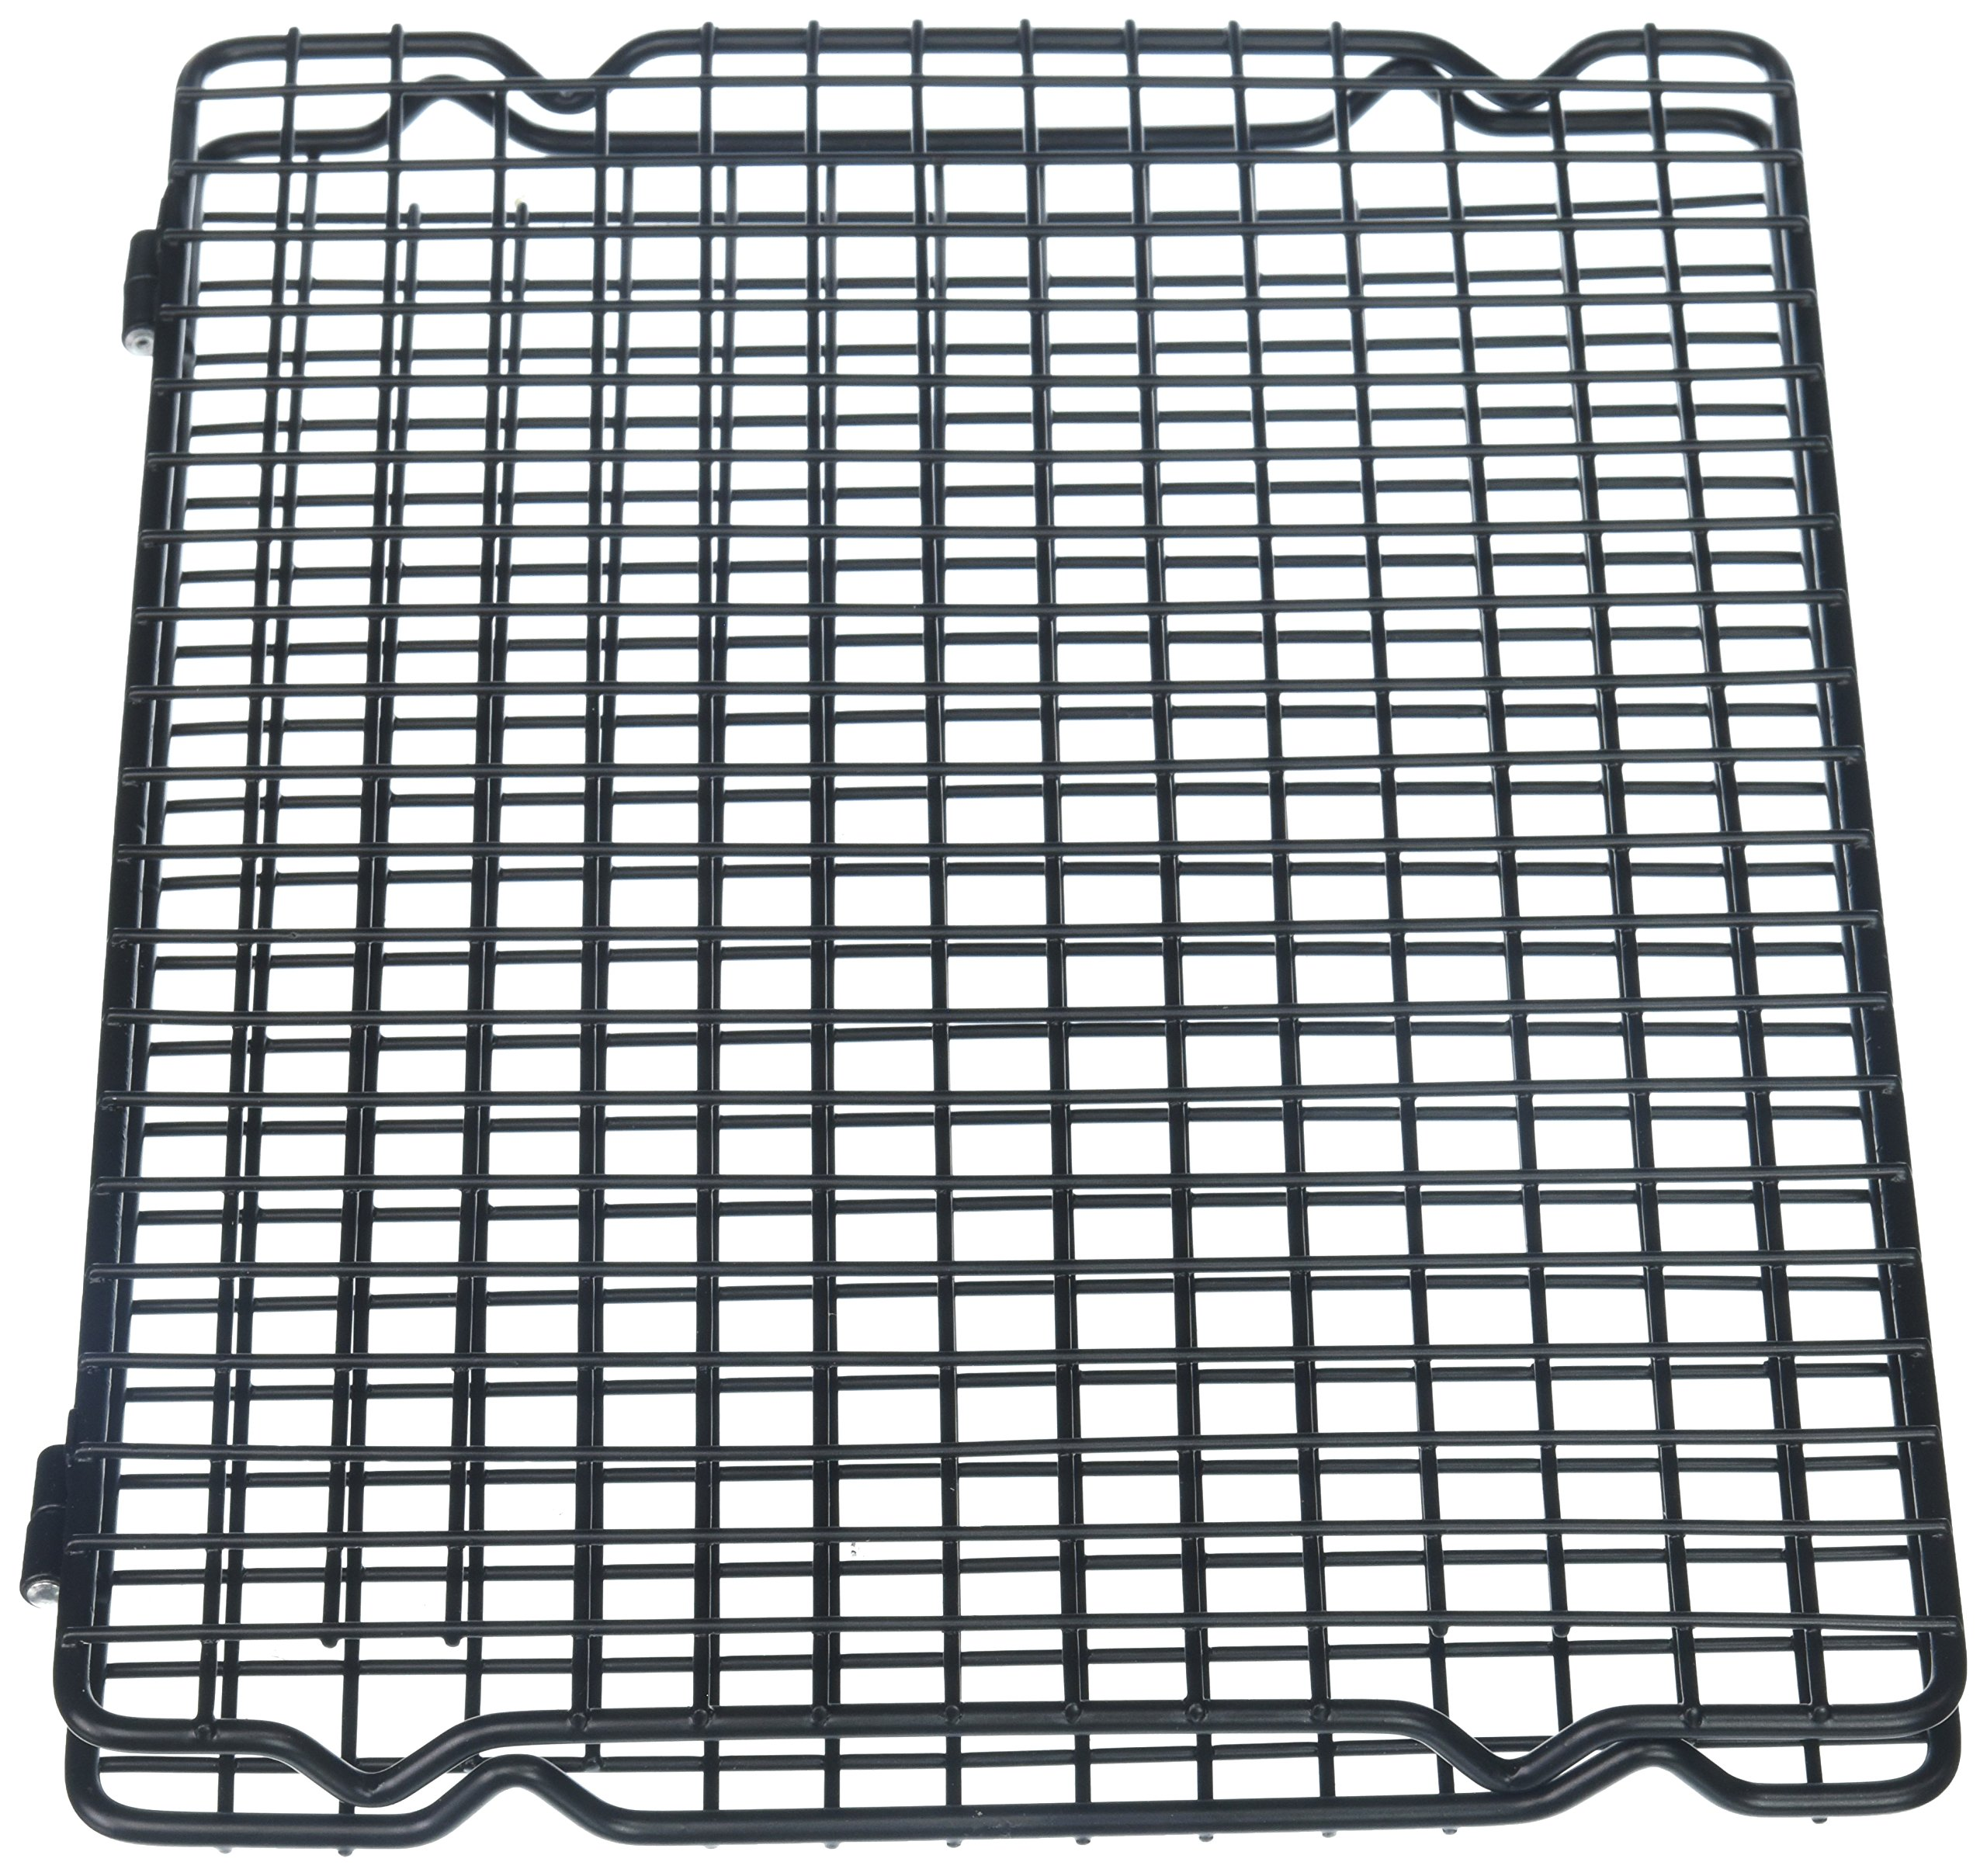 Kaiser 769462 17.91'' x 11.81'' Foldable Cooling Rack, Silver by Kaiser (Image #1)